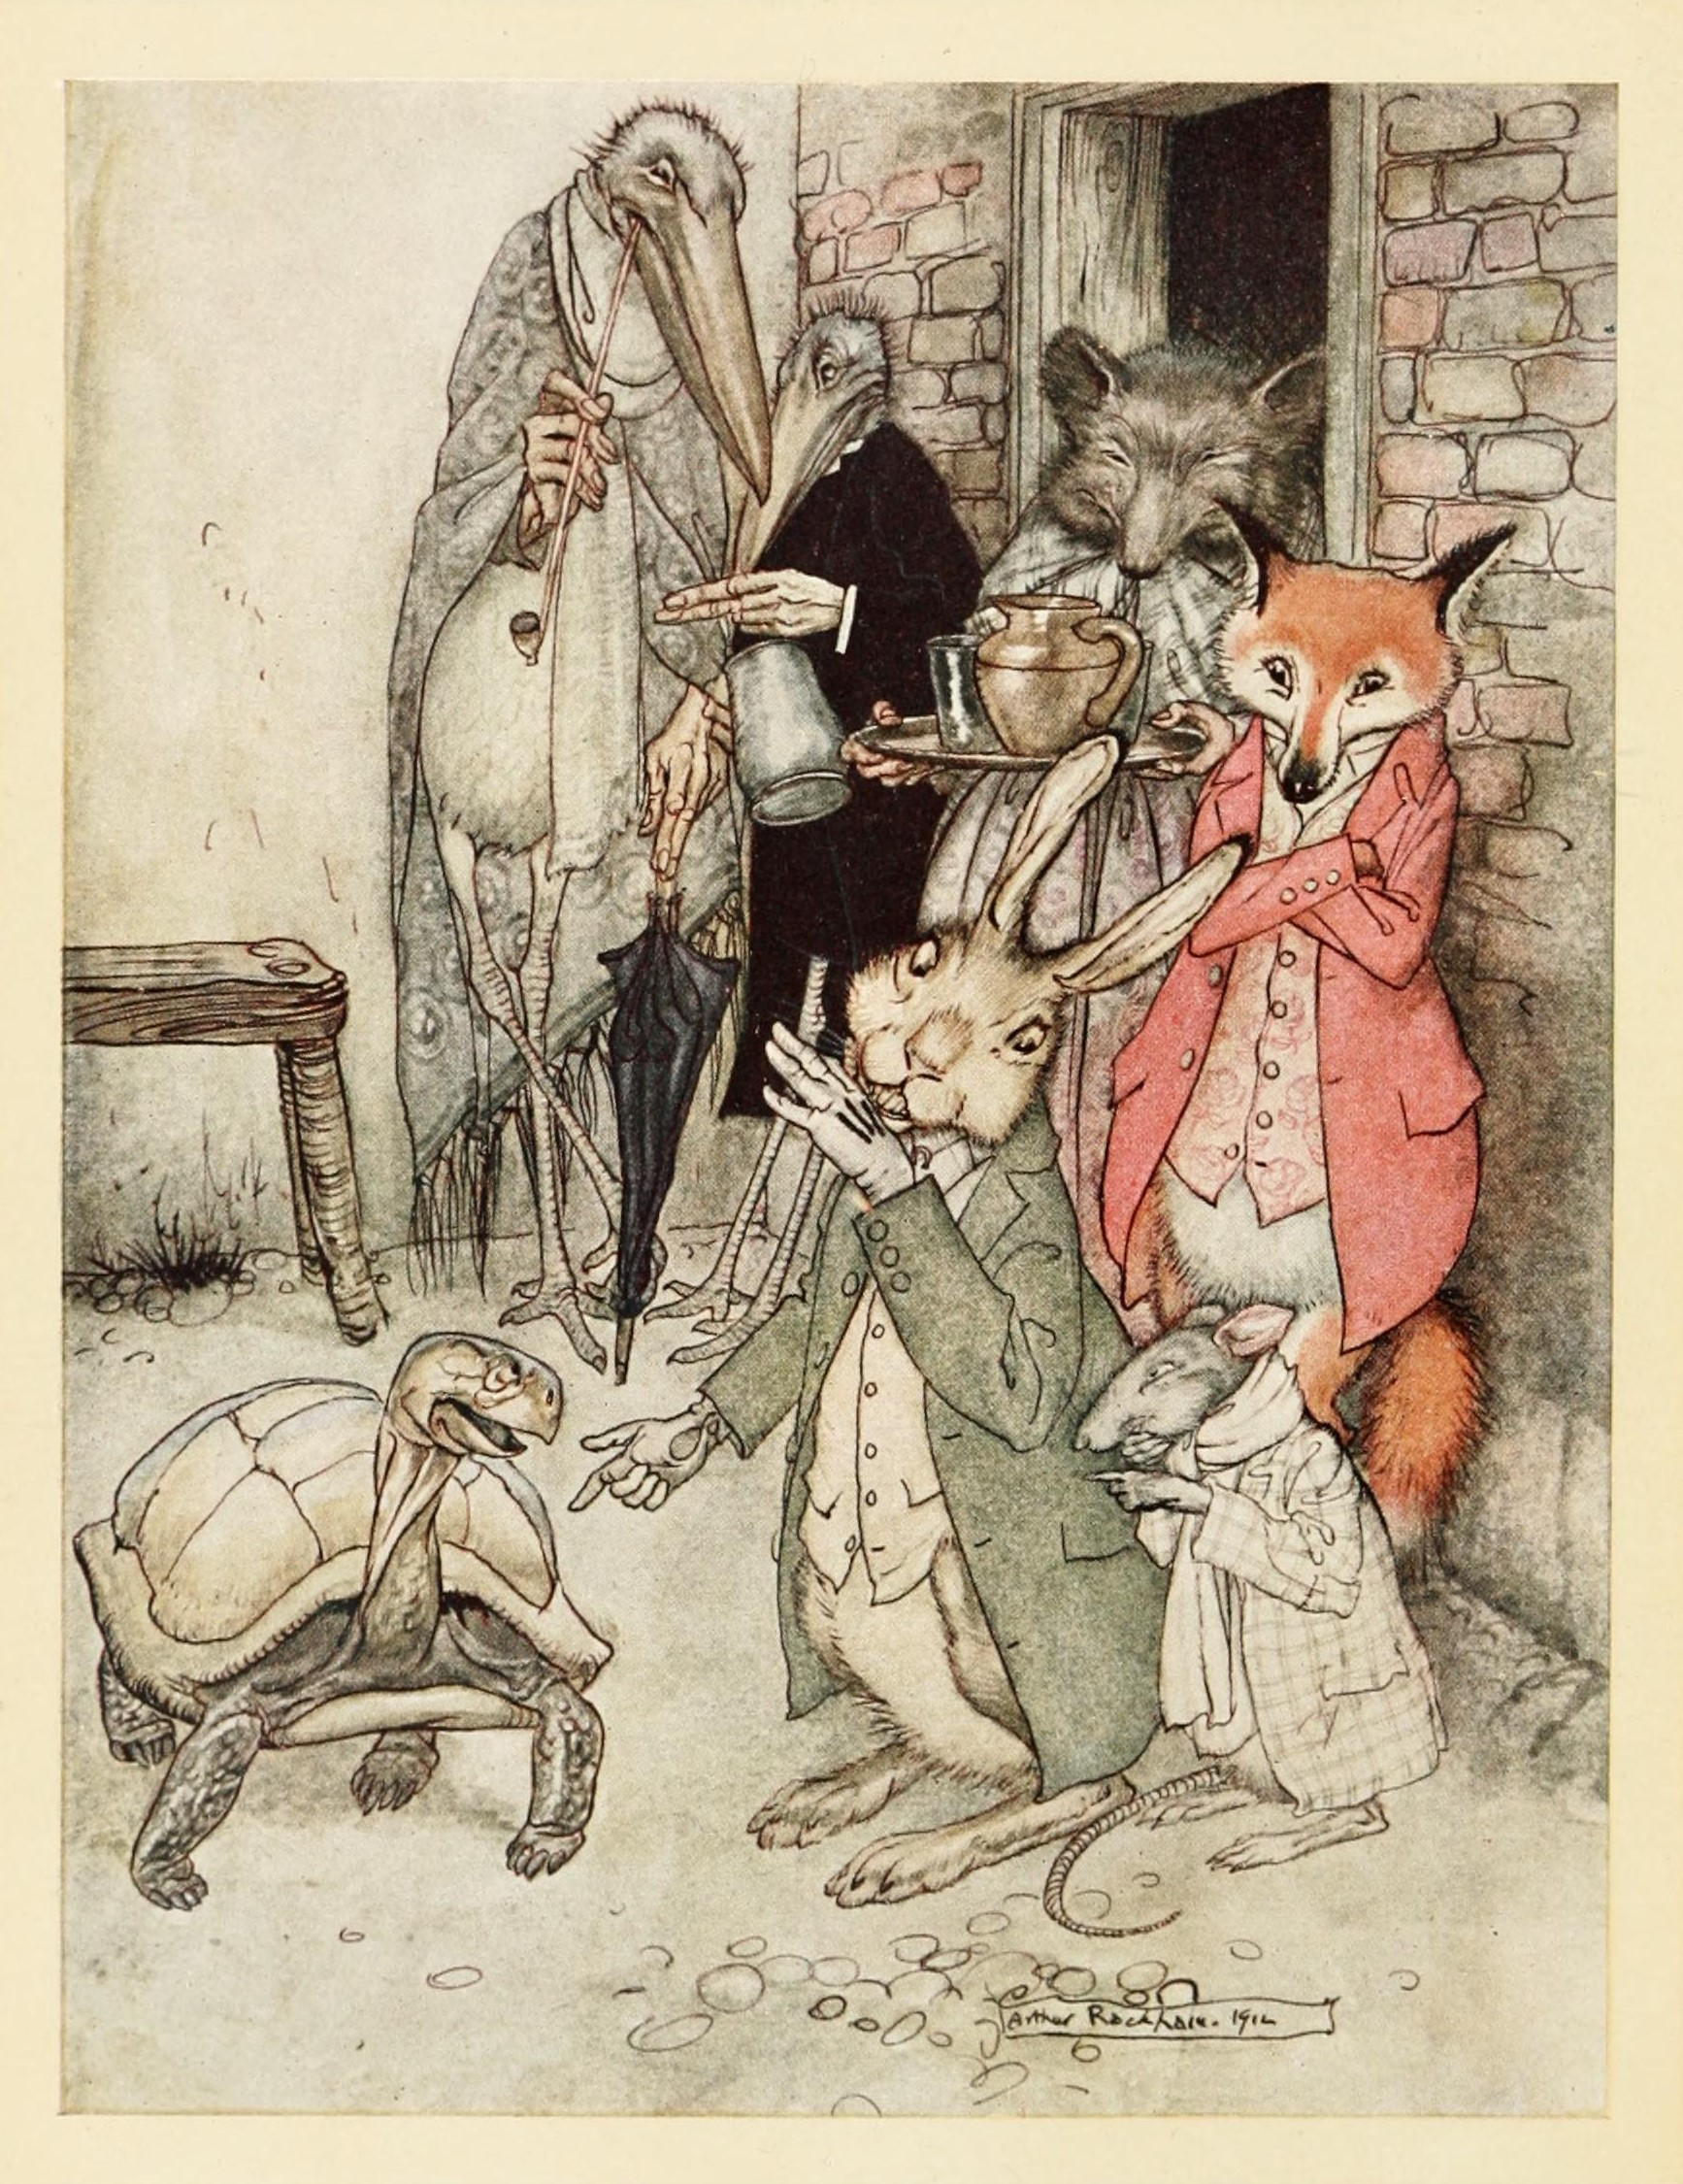 File:Tortoise and hare rackham.jpg